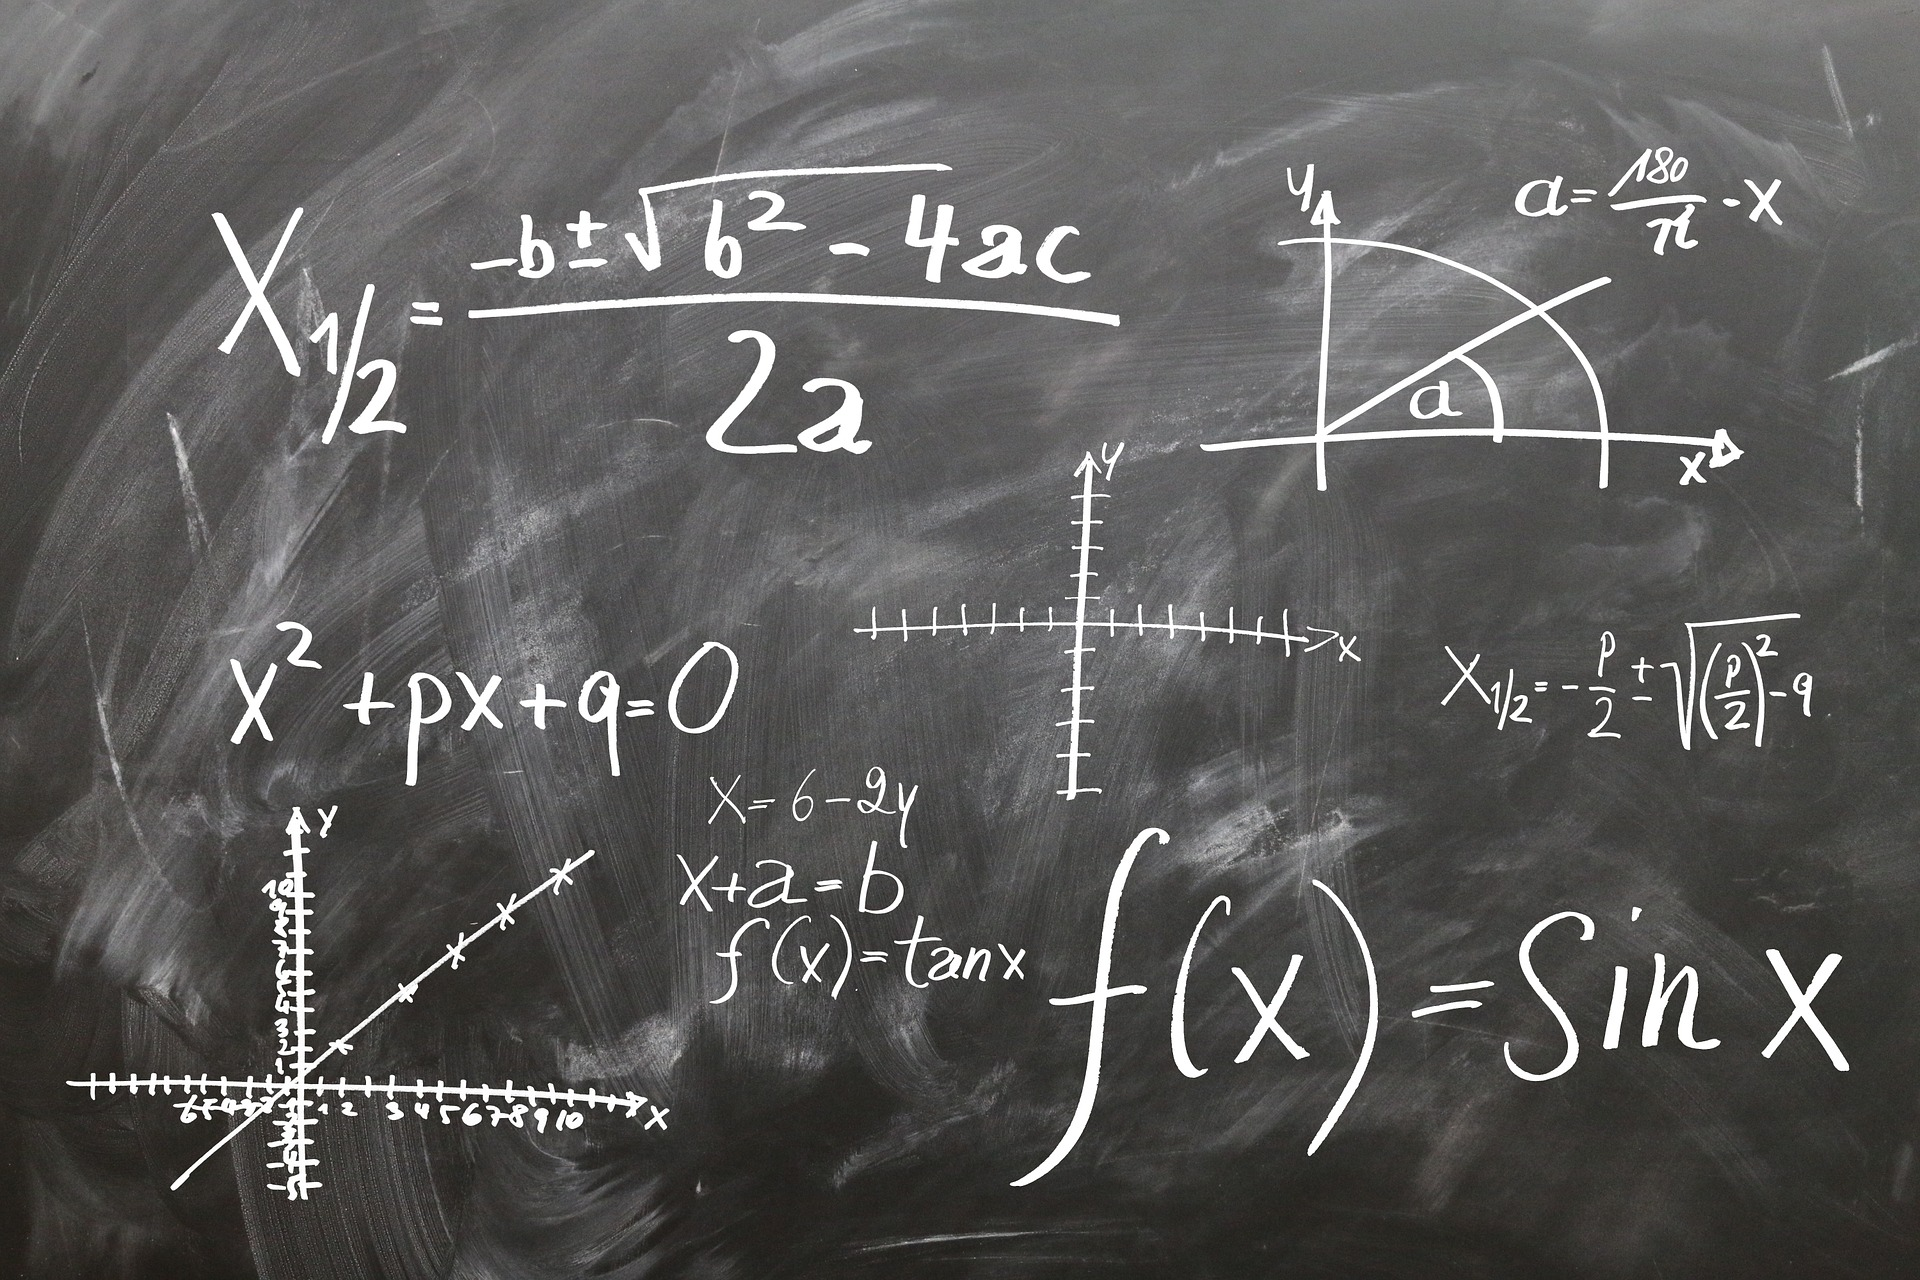 Equations on a chalkboard